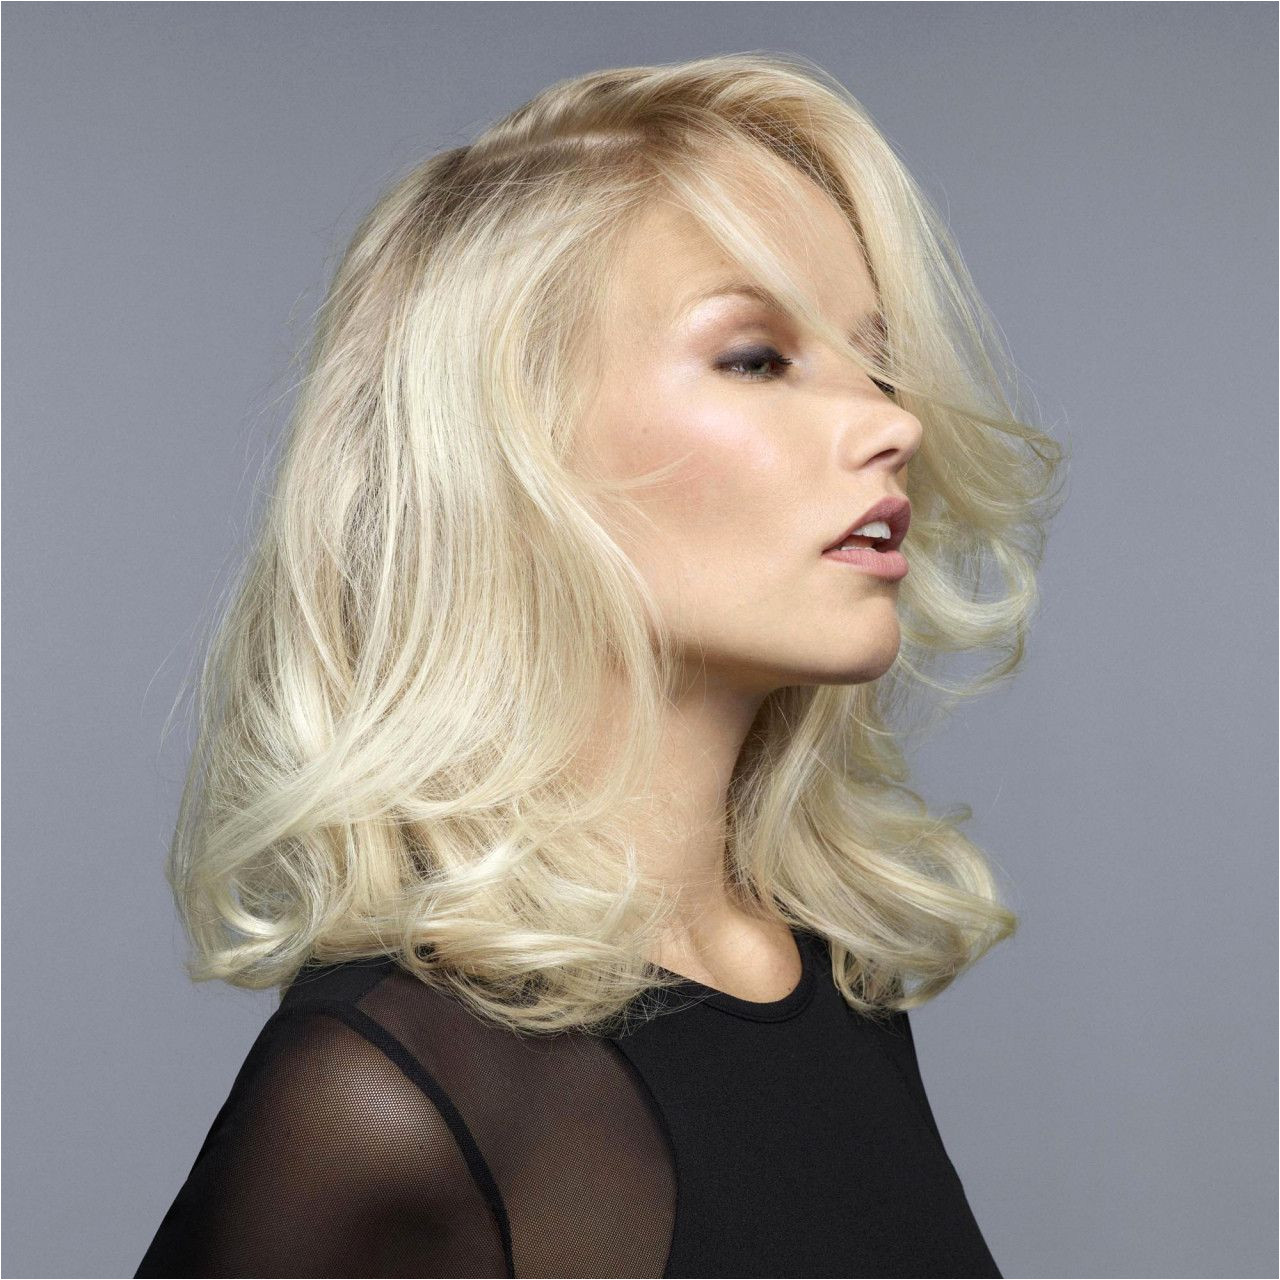 Good Hairstyle For Thick Hair Haircuts For Curly Thick Hair Short Haircut For Thick Hair